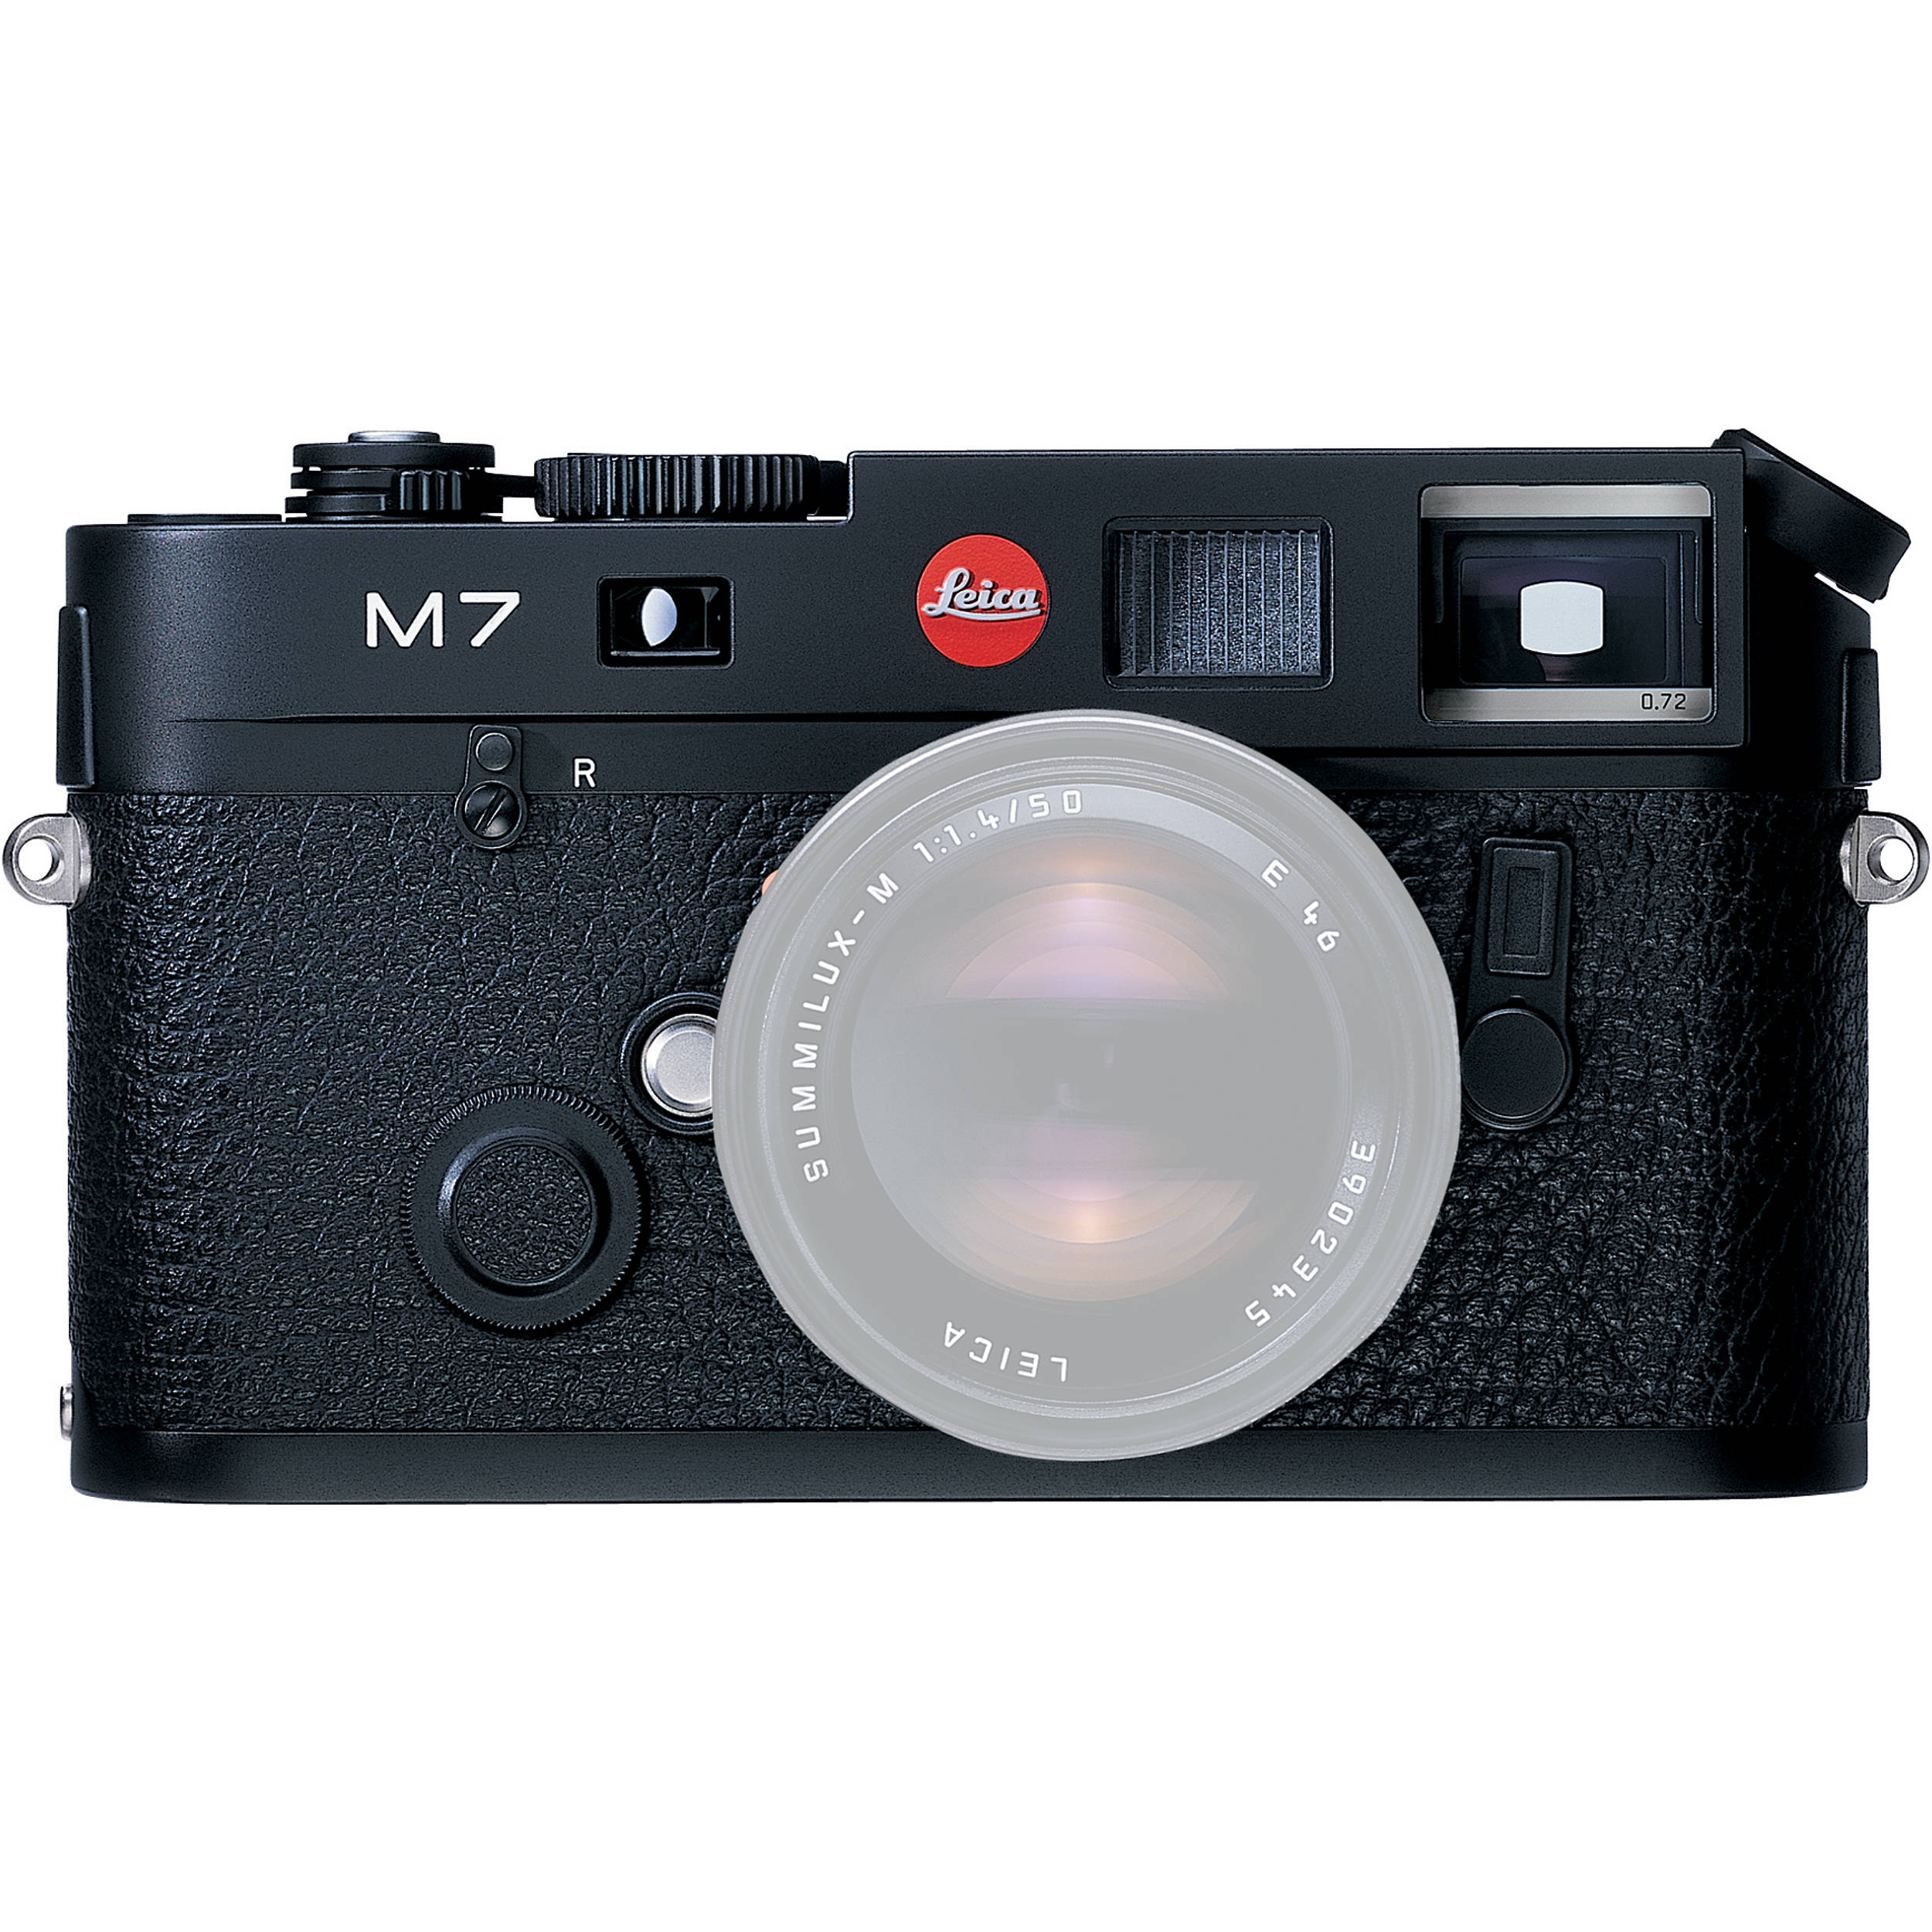 Leica M7 Ttl 72 Rangefinder Camera Black 10503 Bh Photo Blb M2 M3 Printed Circuit Board Remote Control Pc Boards Shop Lens Not Included